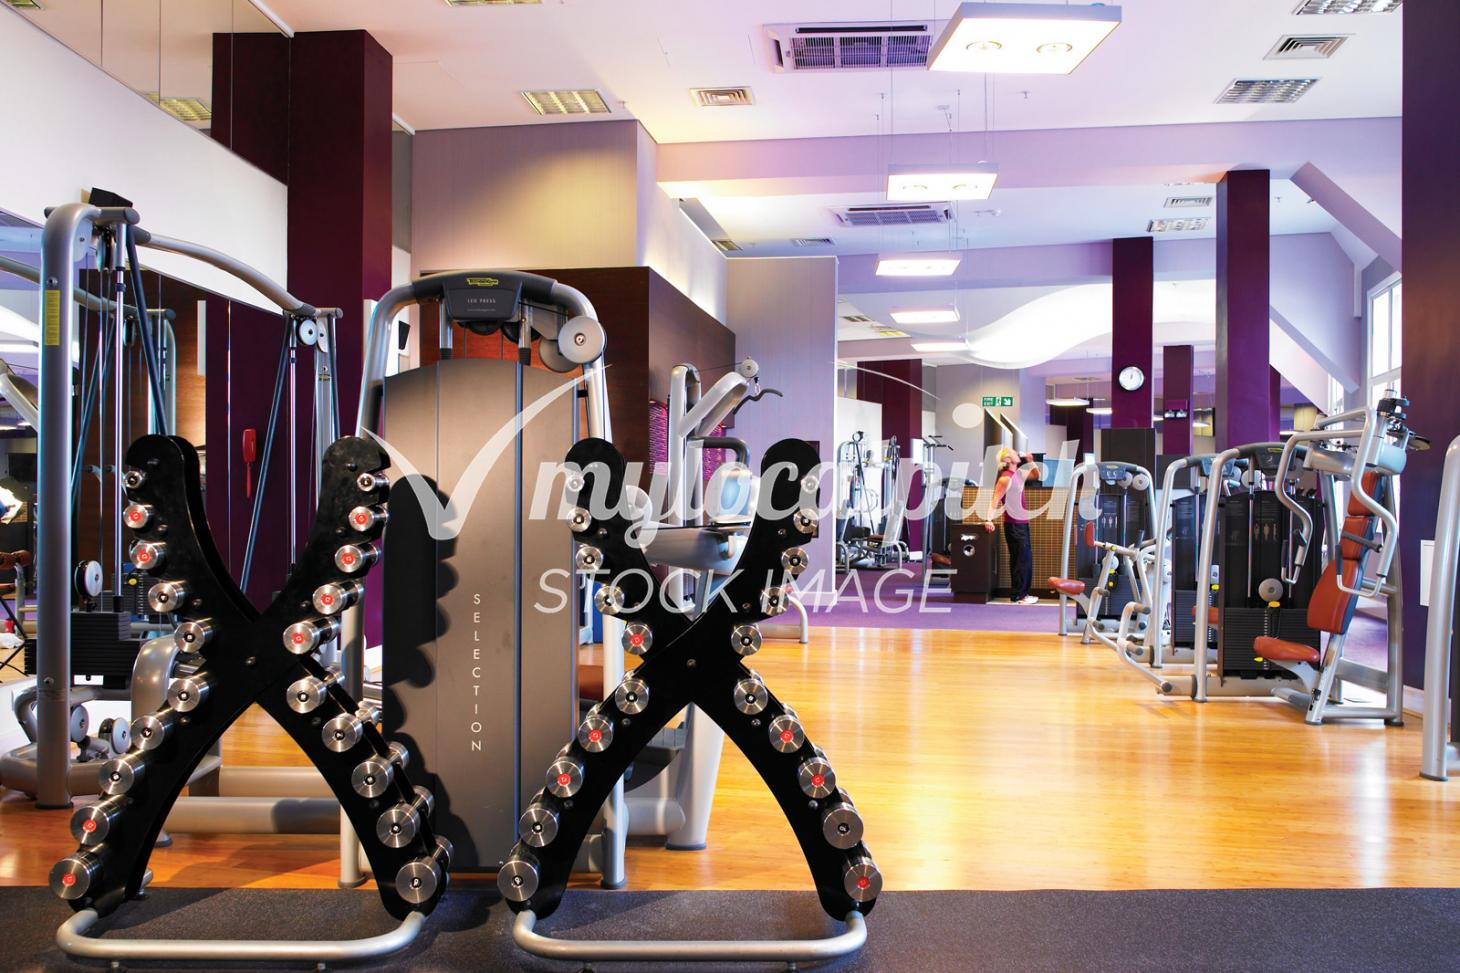 Ealing Squash and Fitness Gym gym